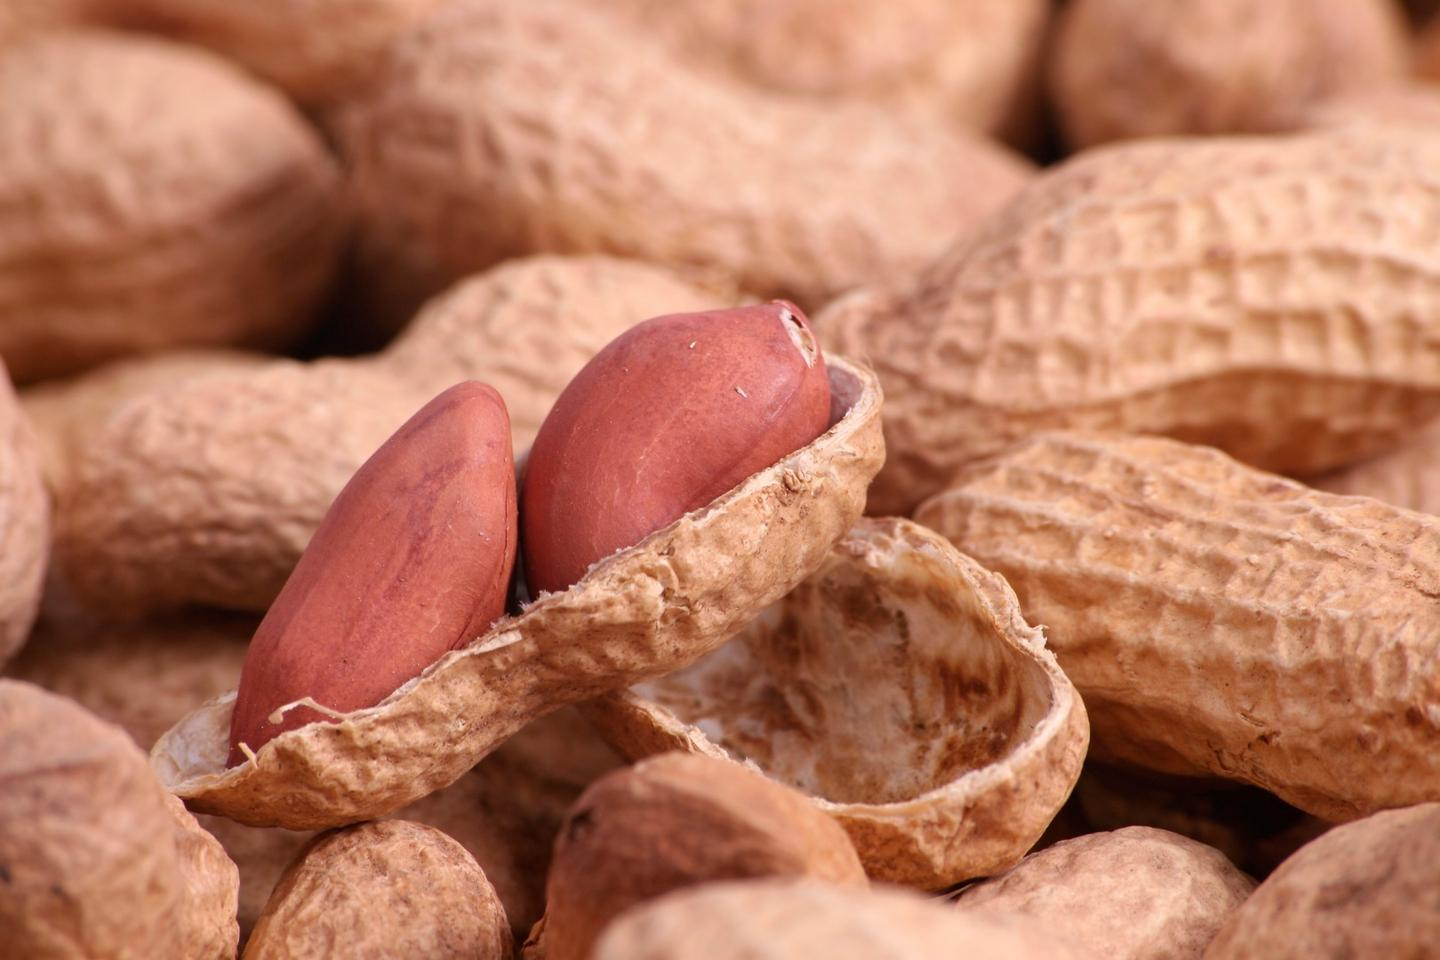 A new nasal spray could help vaccinate against peanut allergies